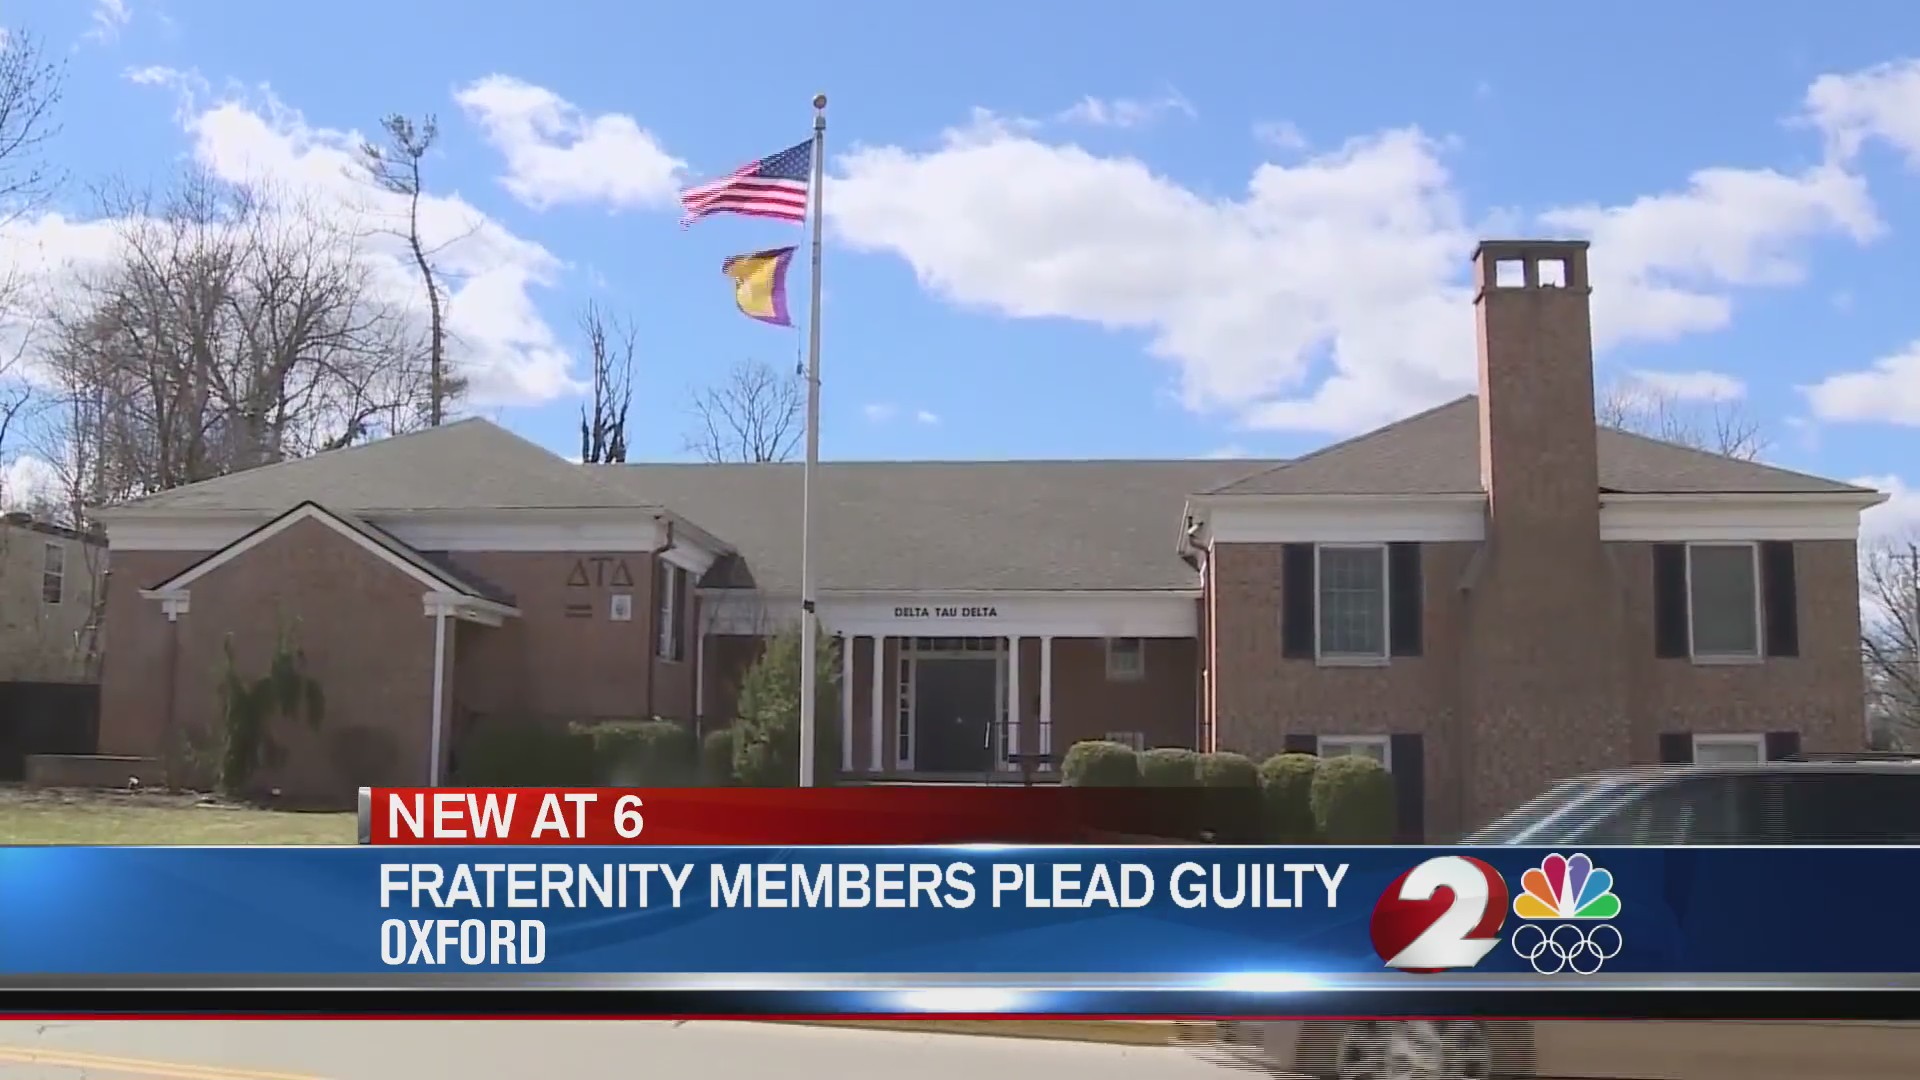 Frat members plead guilty